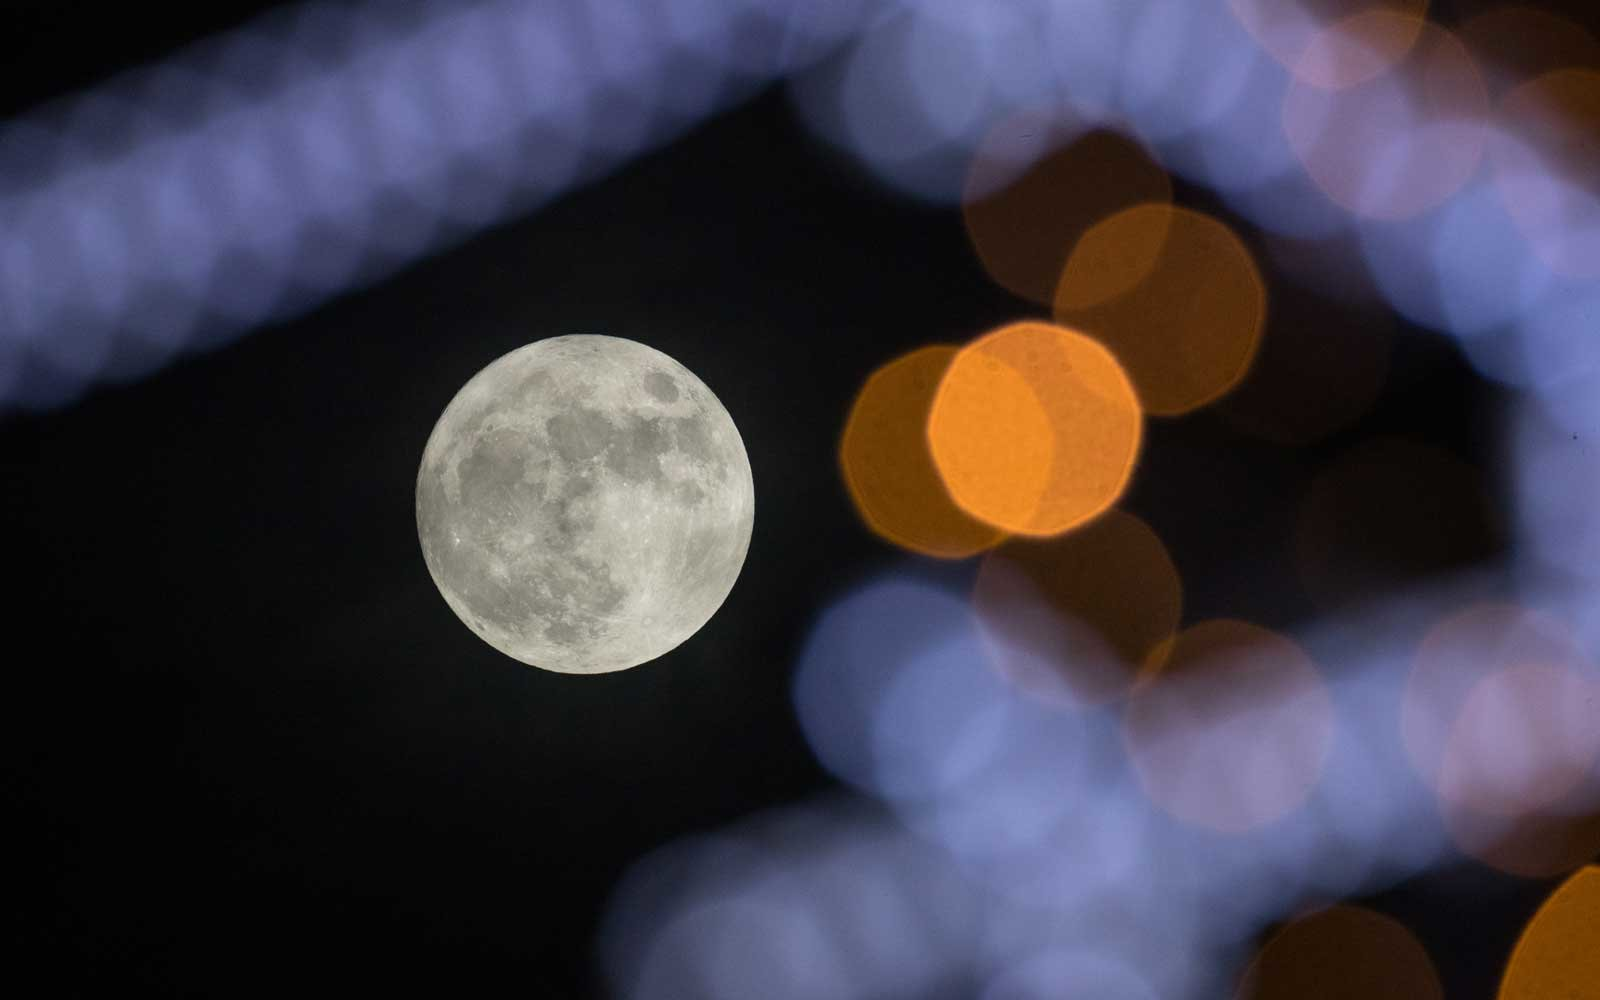 A Cold Supermoon Is Coming To Welcome The Winter Solstice And It